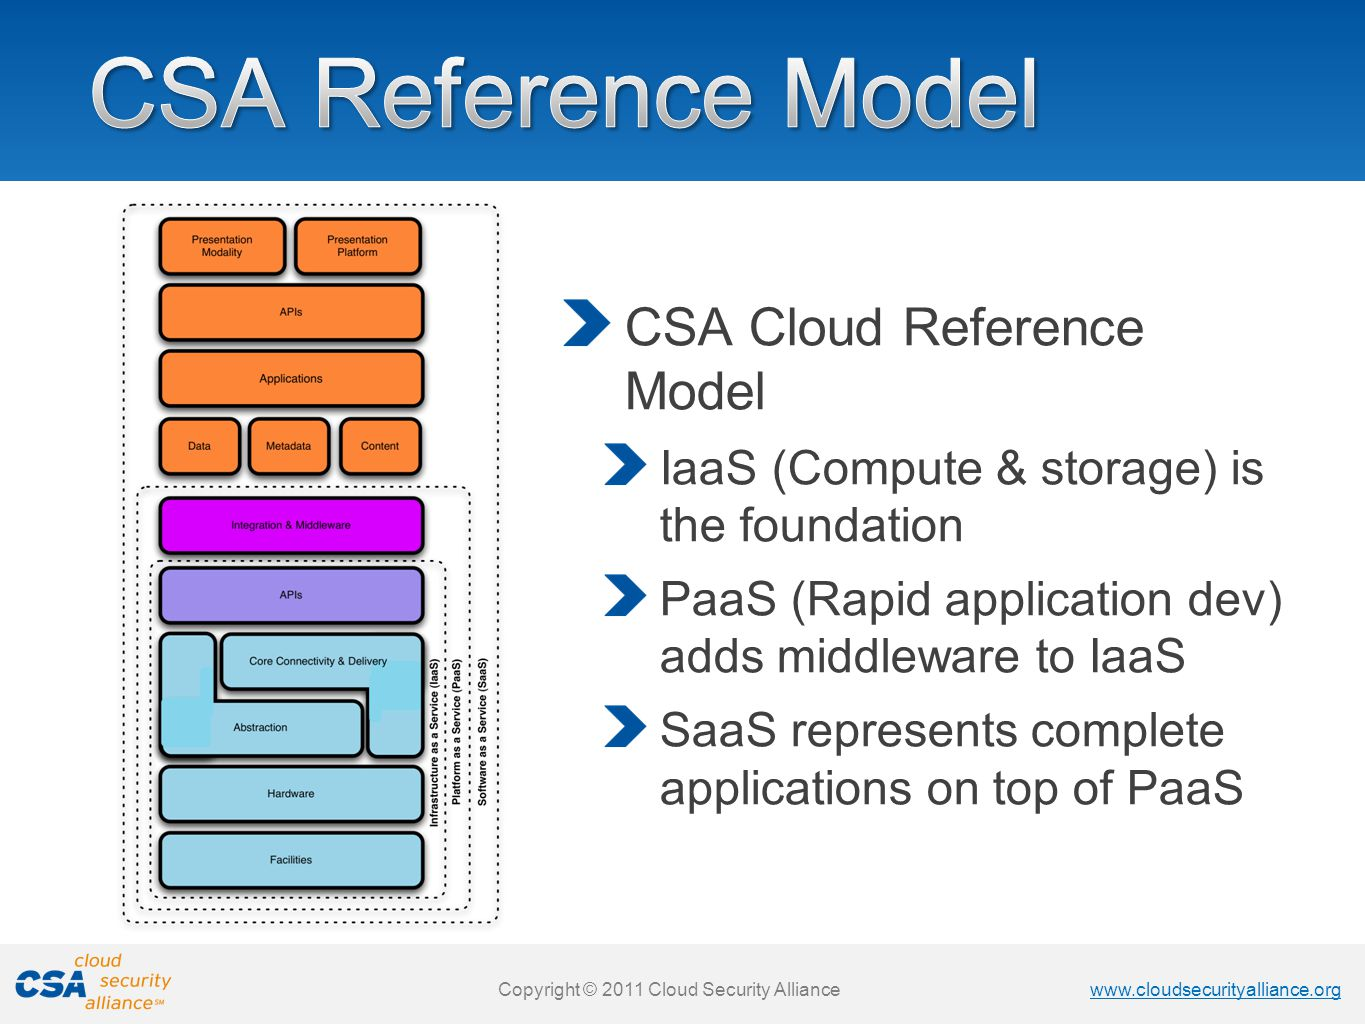 www.cloudsecurityalliance.org Copyright © 2011 Cloud Security Alliance www.cloudsecurityalliance.org Copyright © 2011 Cloud Security Alliance CSA Cloud Reference Model IaaS (Compute & storage) is the foundation PaaS (Rapid application dev) adds middleware to IaaS SaaS represents complete applications on top of PaaS